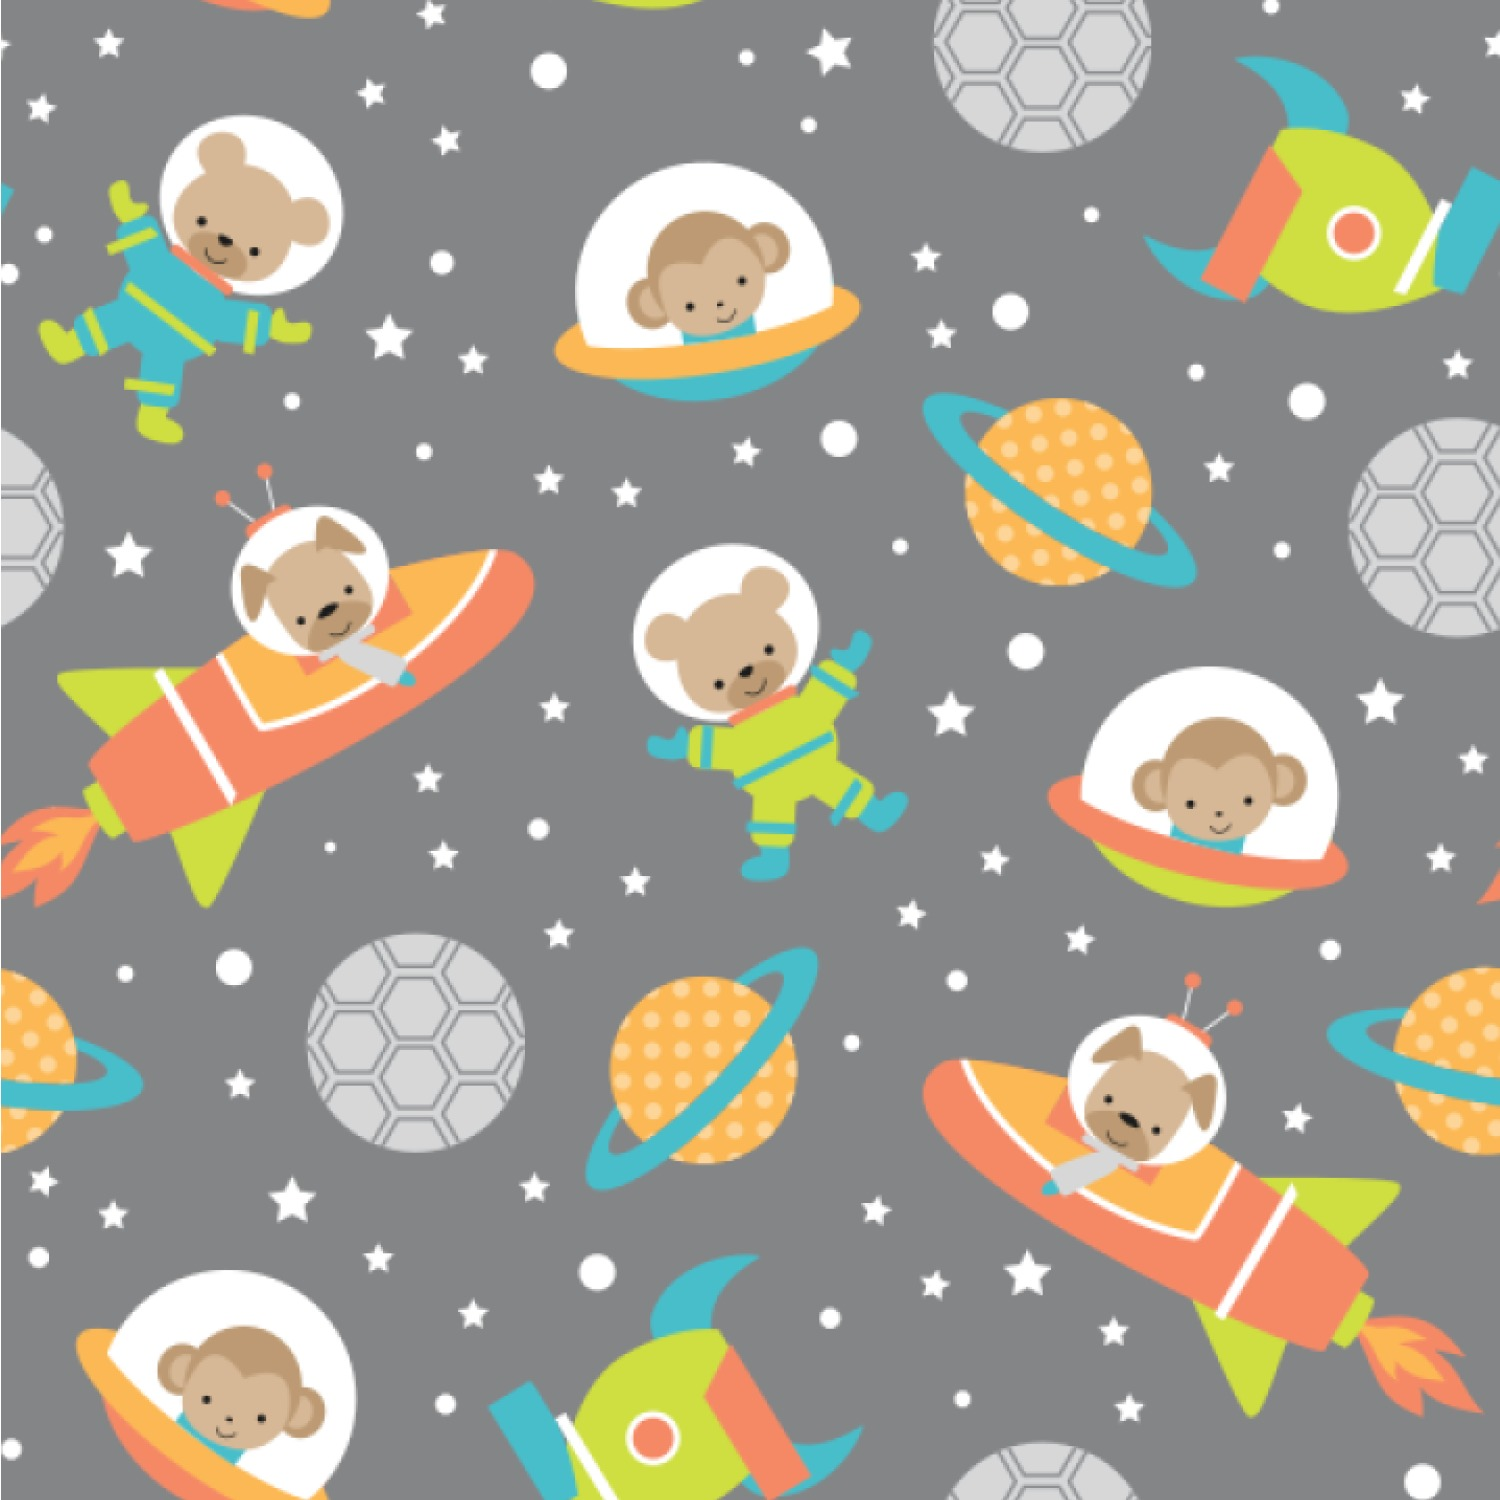 Space explorer wallpaper surface covering youcustomizeit - Space explorer wallpaper ...